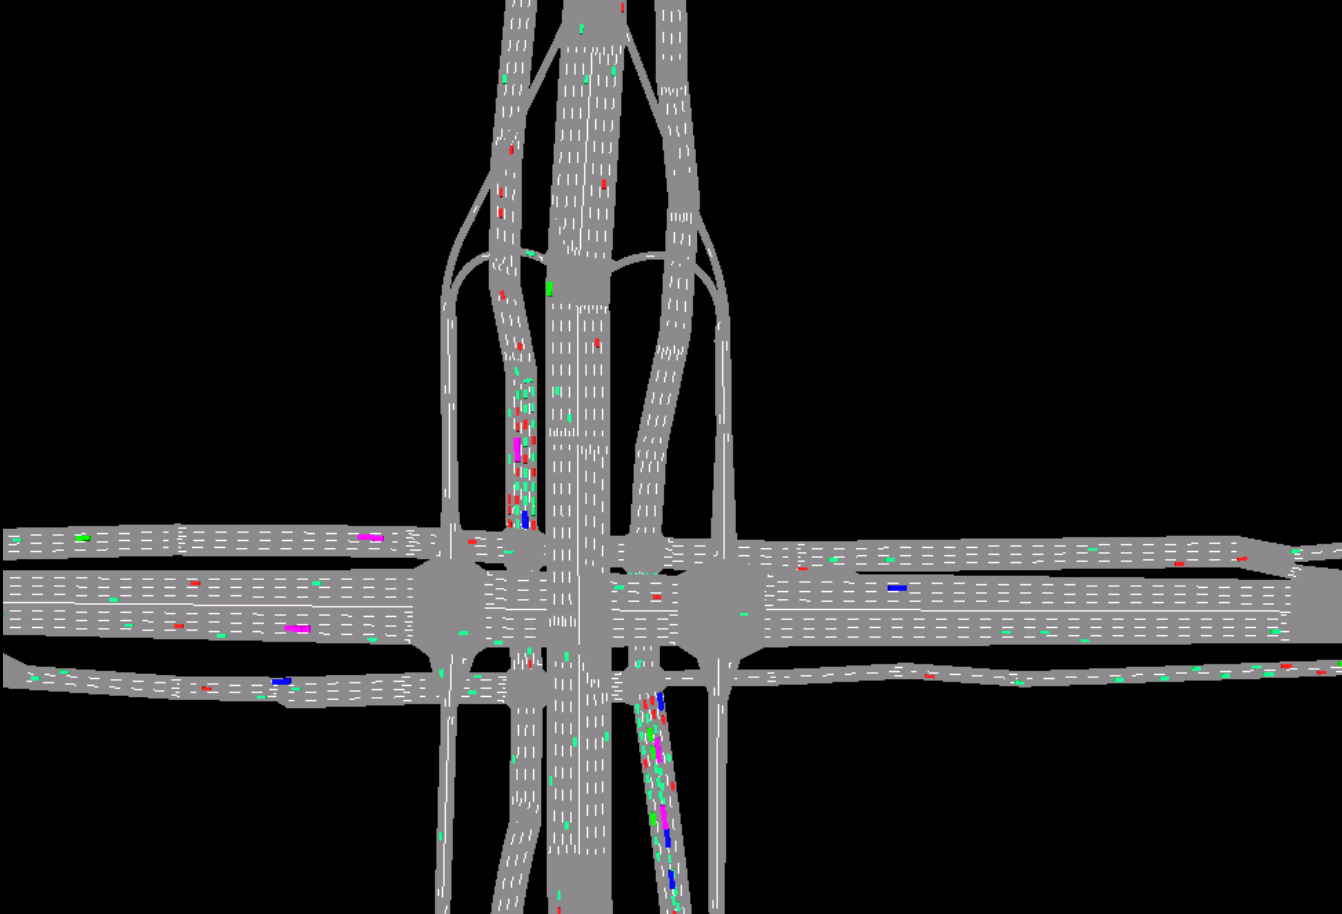 Systematica-Guomao Junction-Vehicular Traffic Simulation of Current Situation